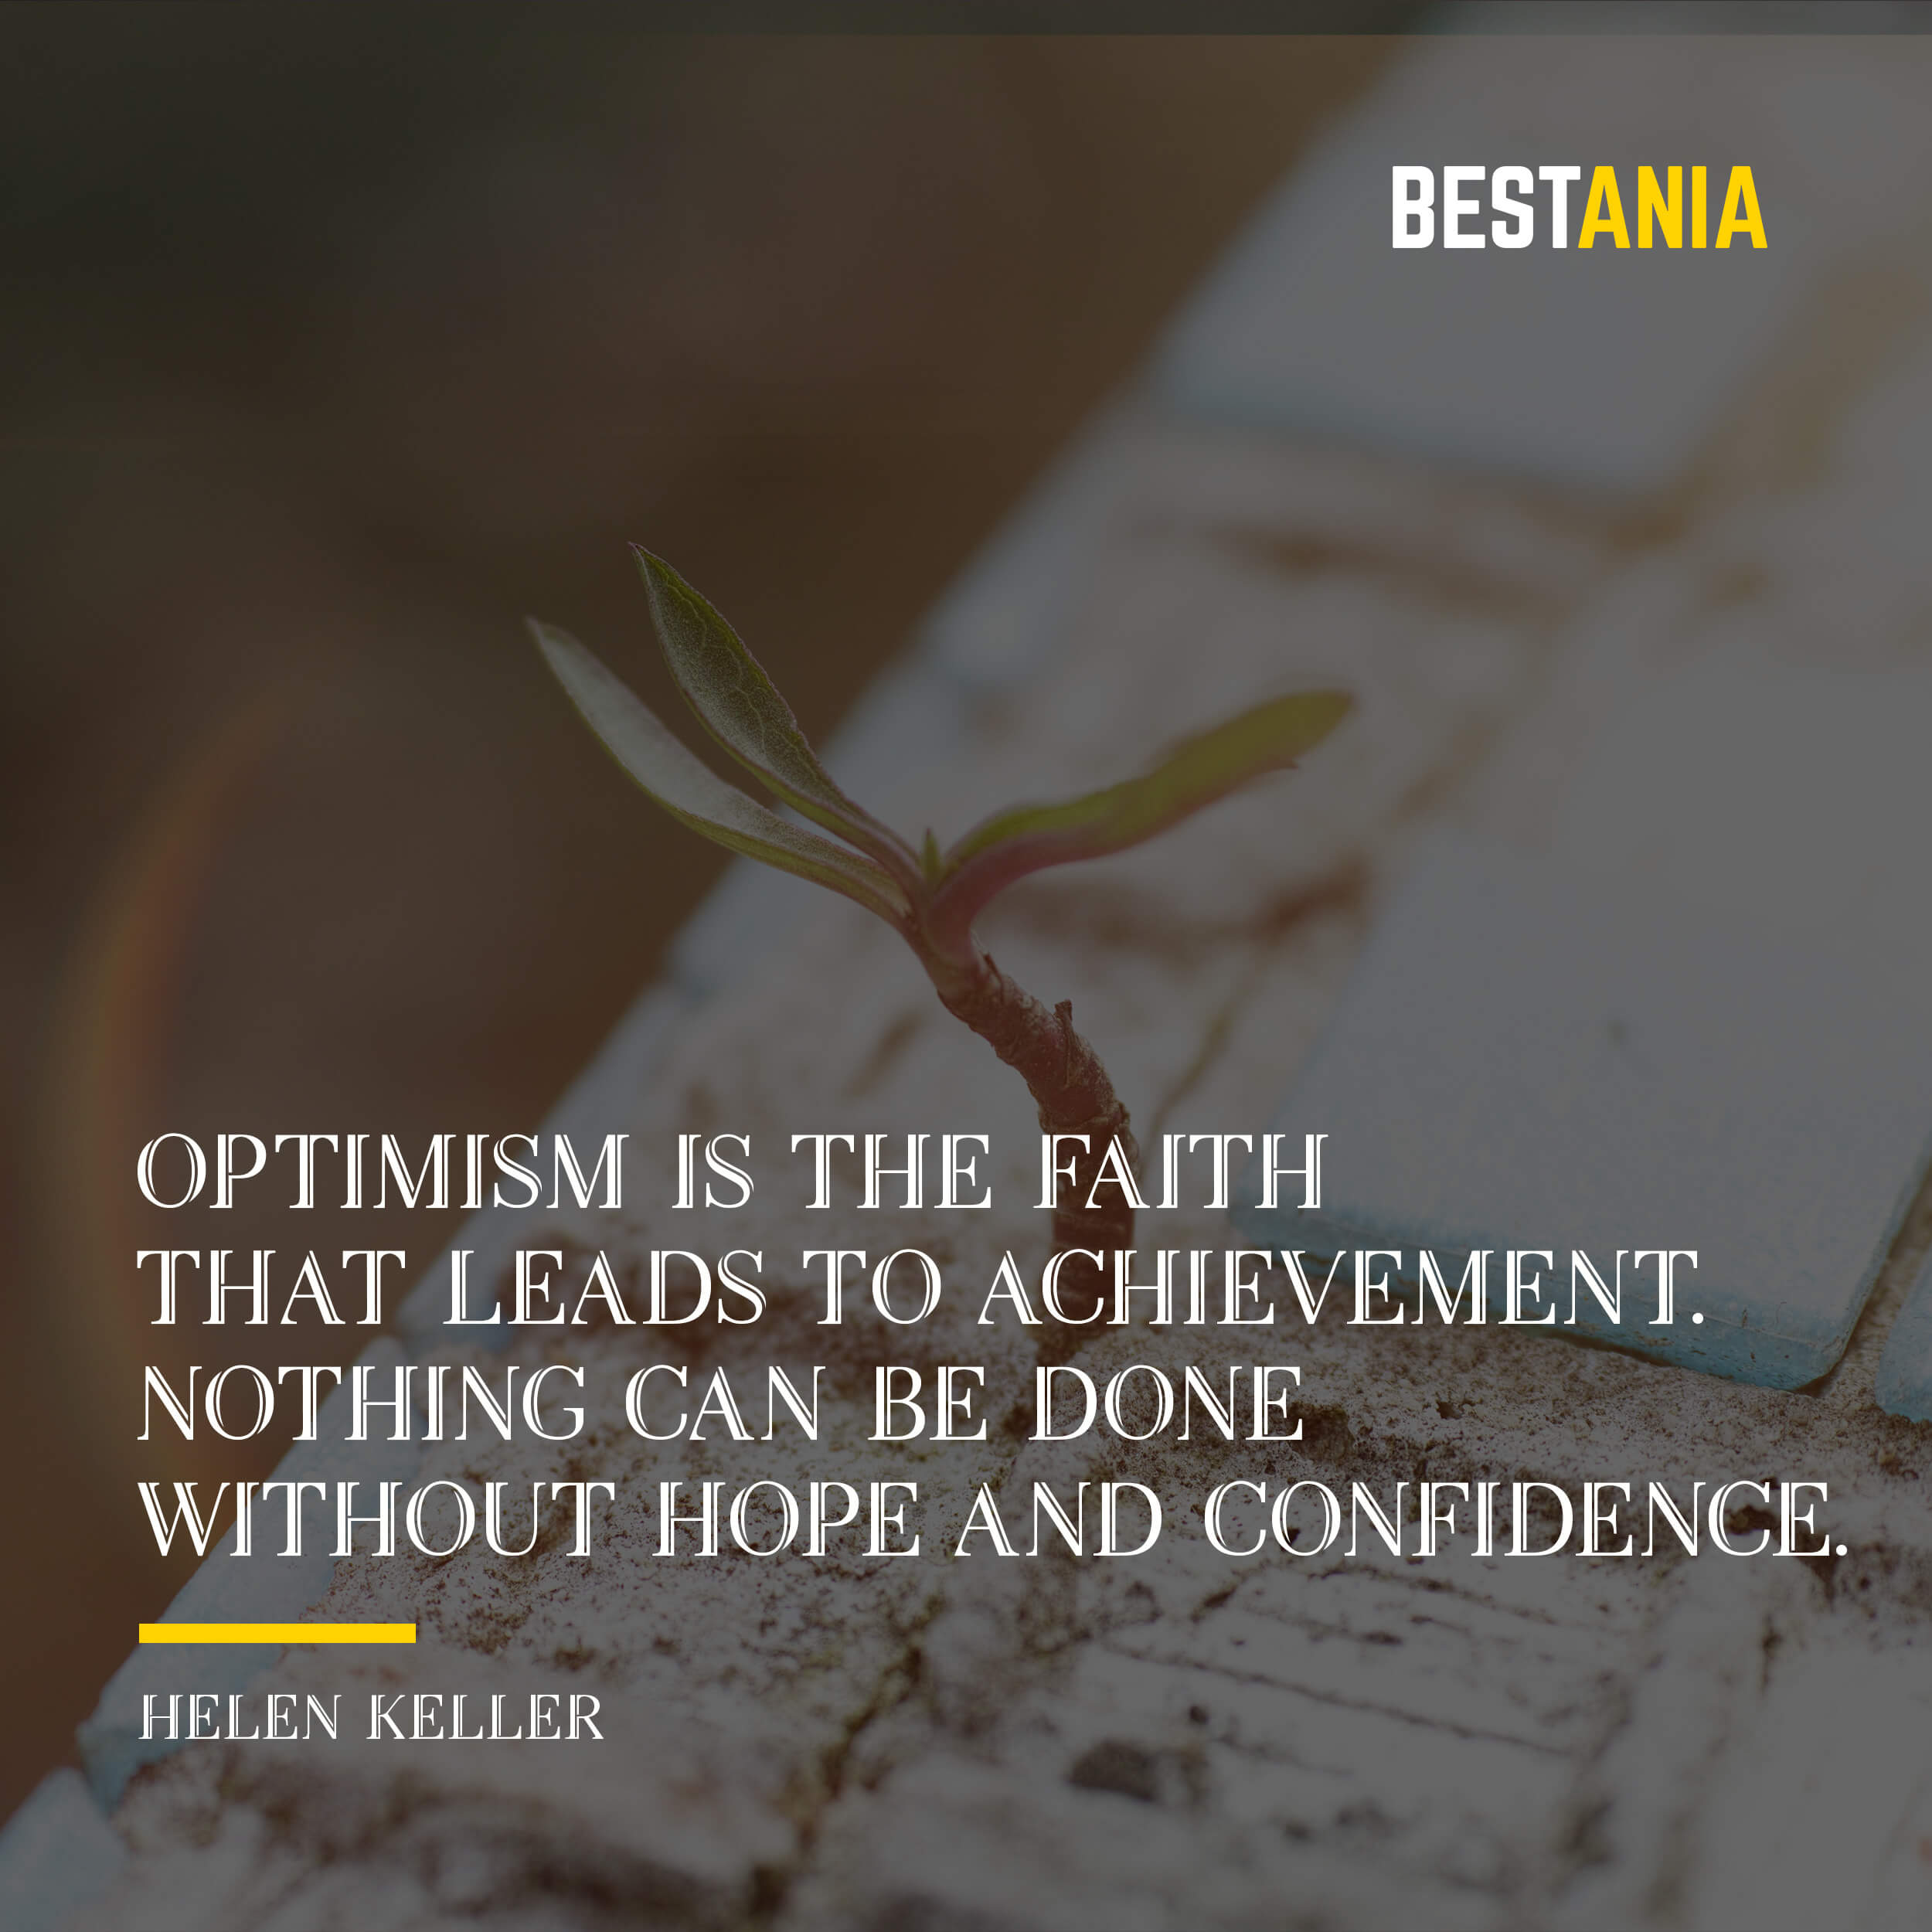 """OPTIMISM IS THE FAITH THAT LEADS TO ACHIEVEMENT. NOTHING CAN BE DONE WITHOUT HOPE AND CONFIDENCE."" HELEN KELLER"